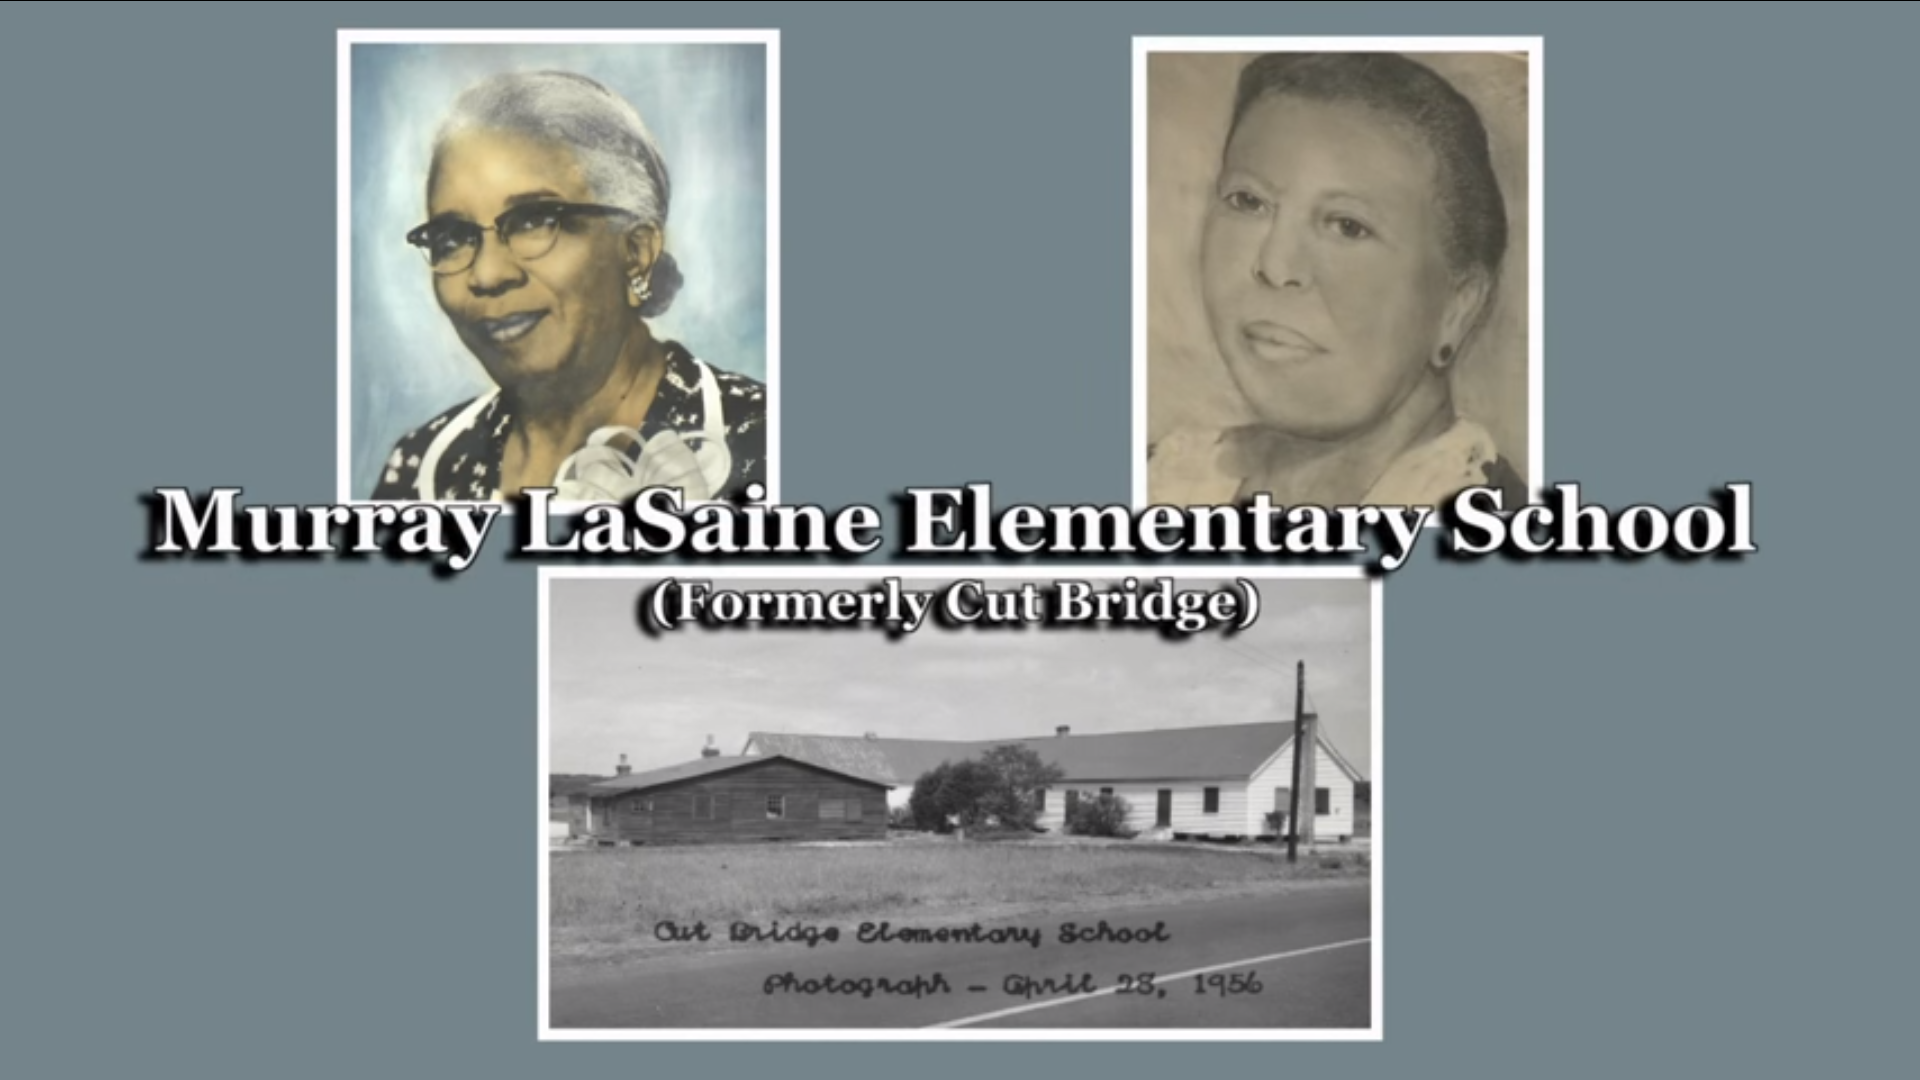 Dedication Day - Murray-LaSaine Elementary School